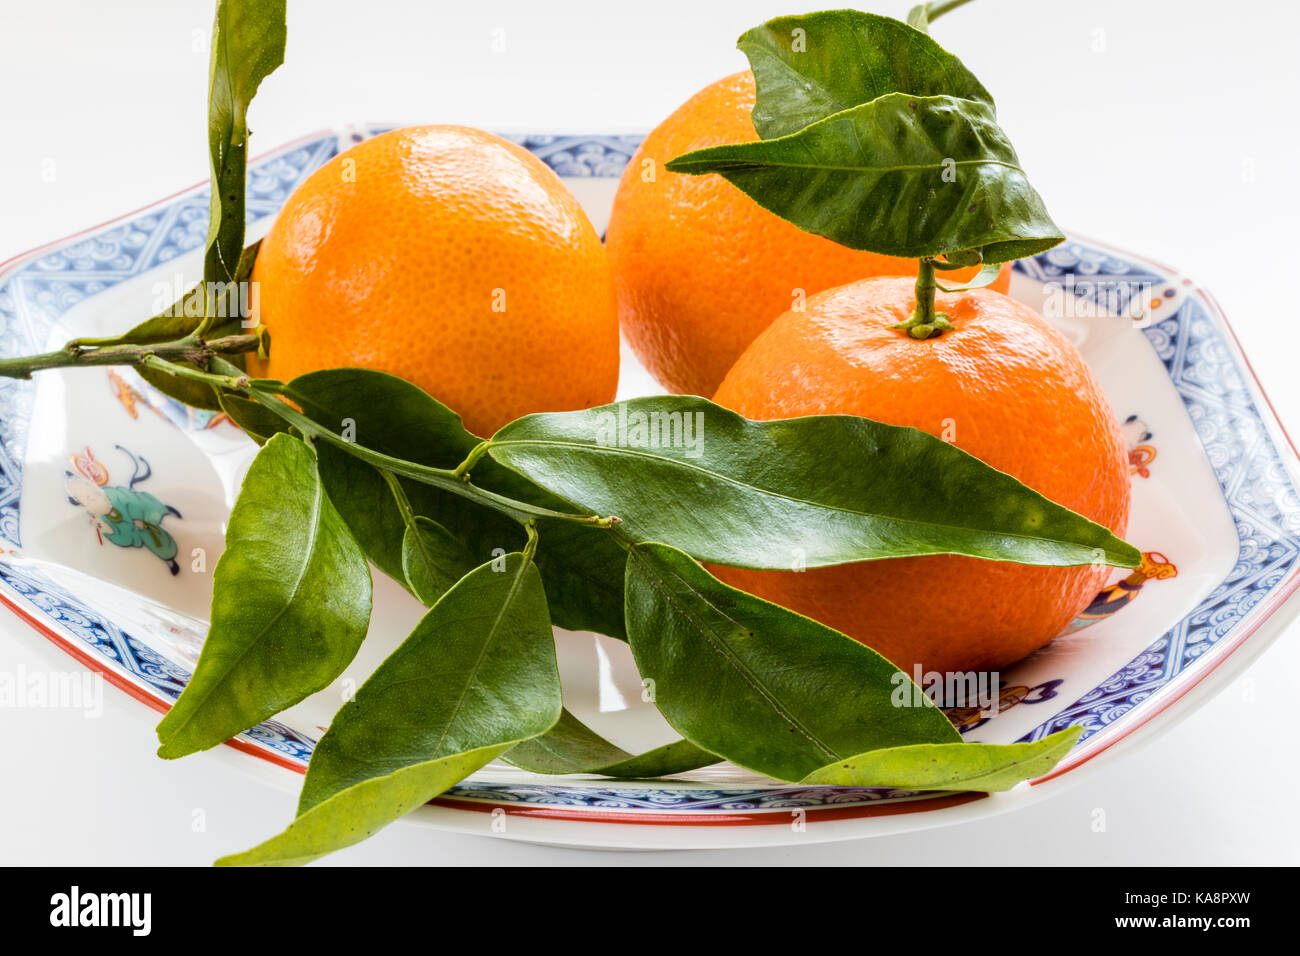 England. Fruit, three oranges still attached to the vine, branch and leaves, on Chinese heptagon, seven-sided plate. - Stock Image